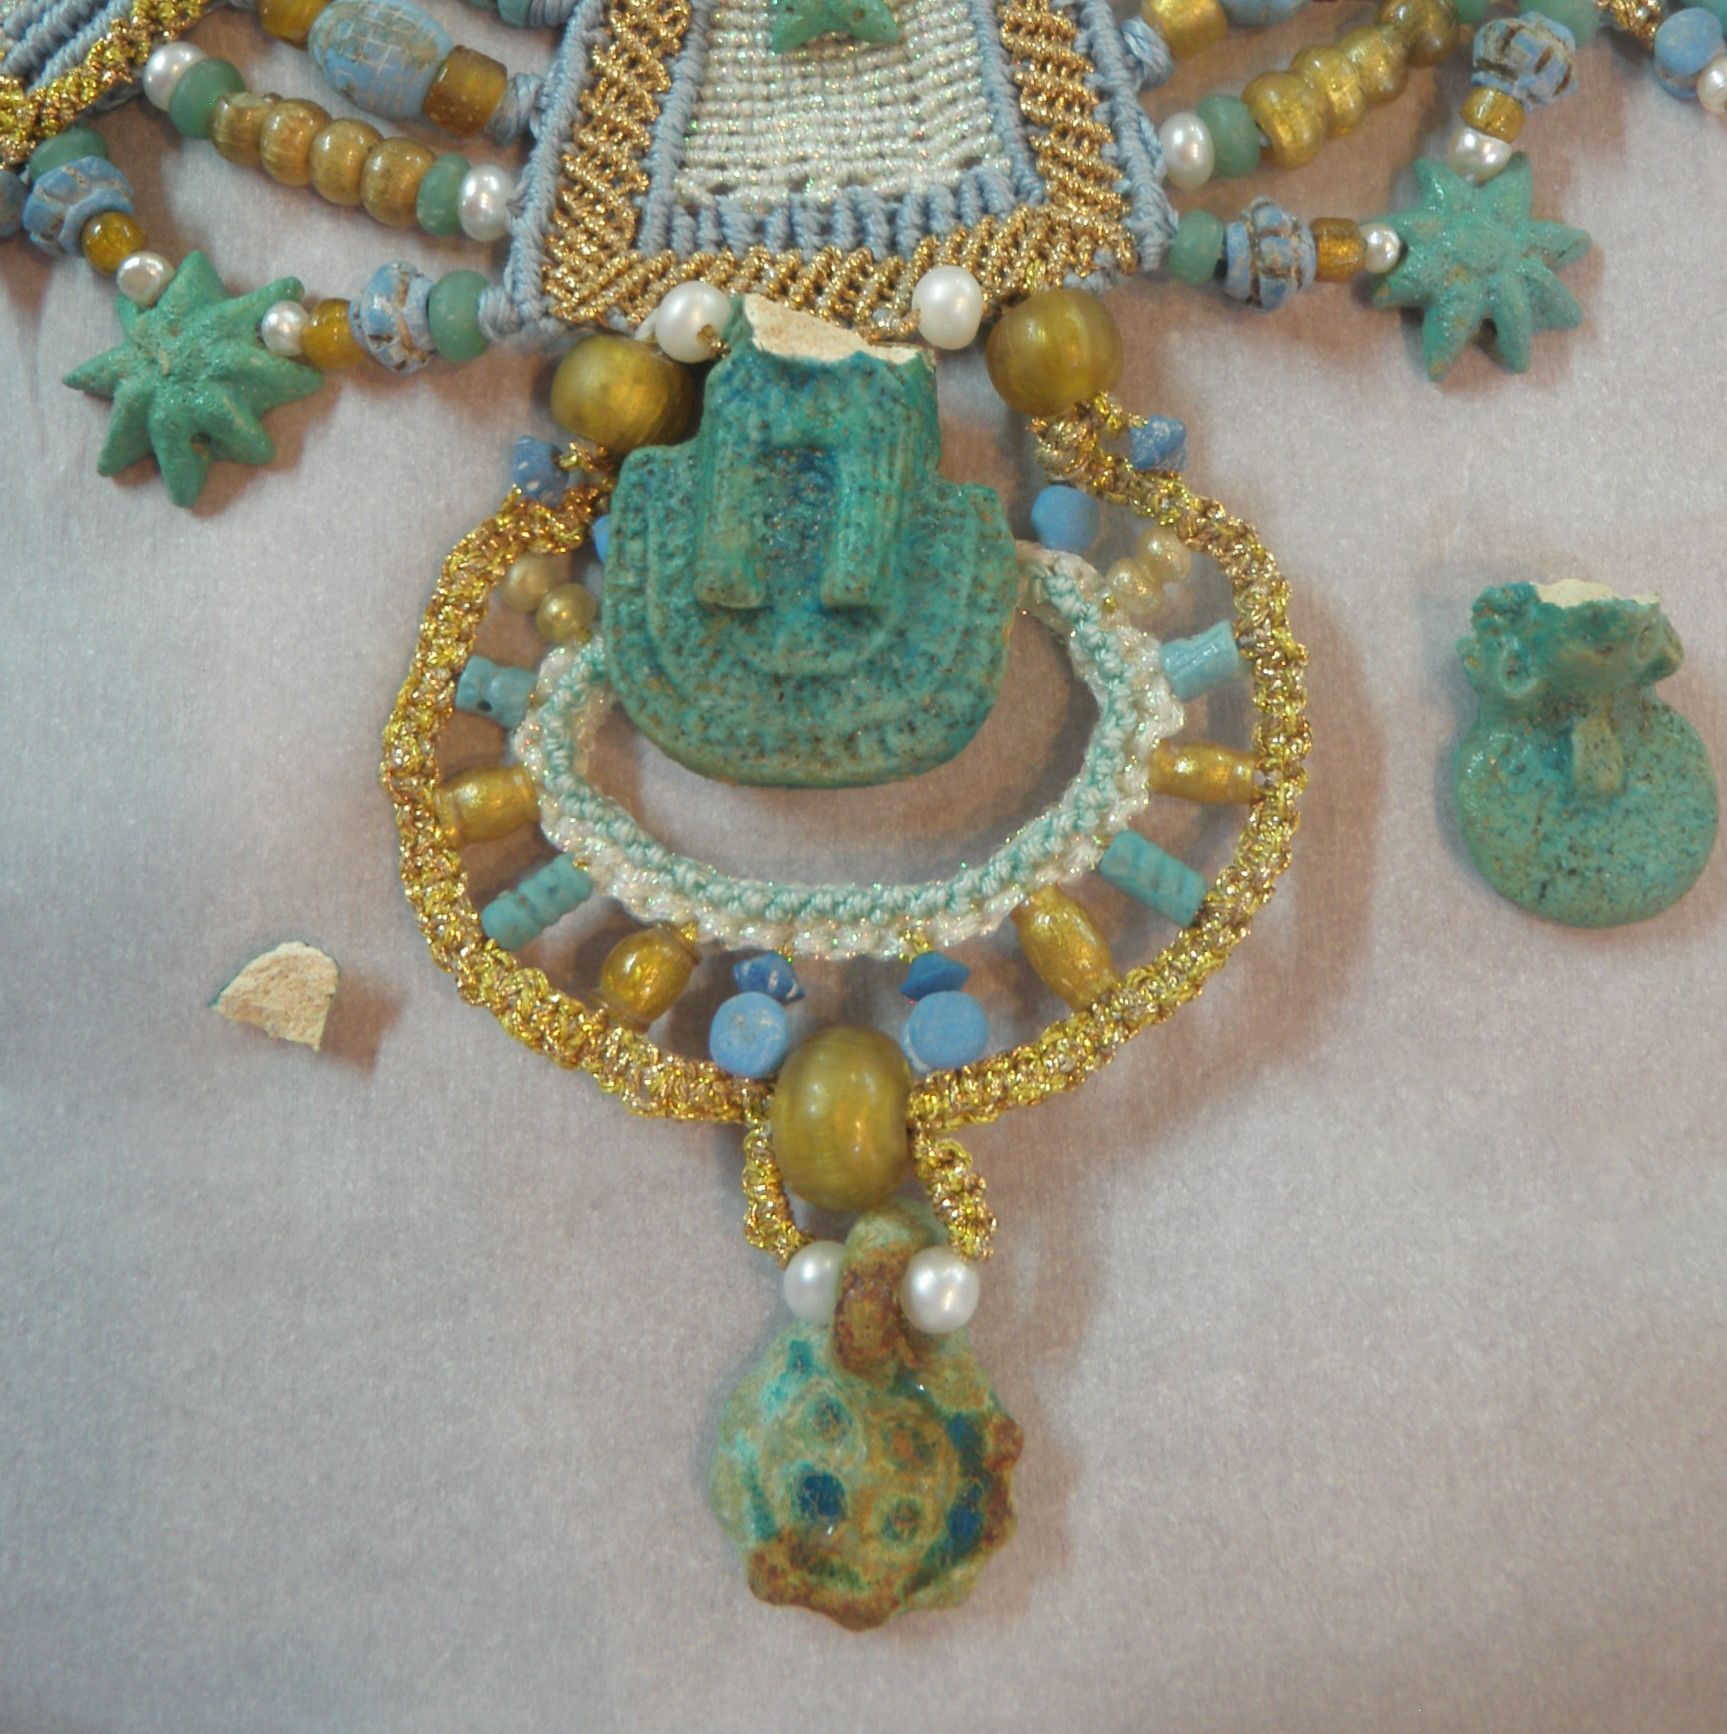 Faience necklace before treatment